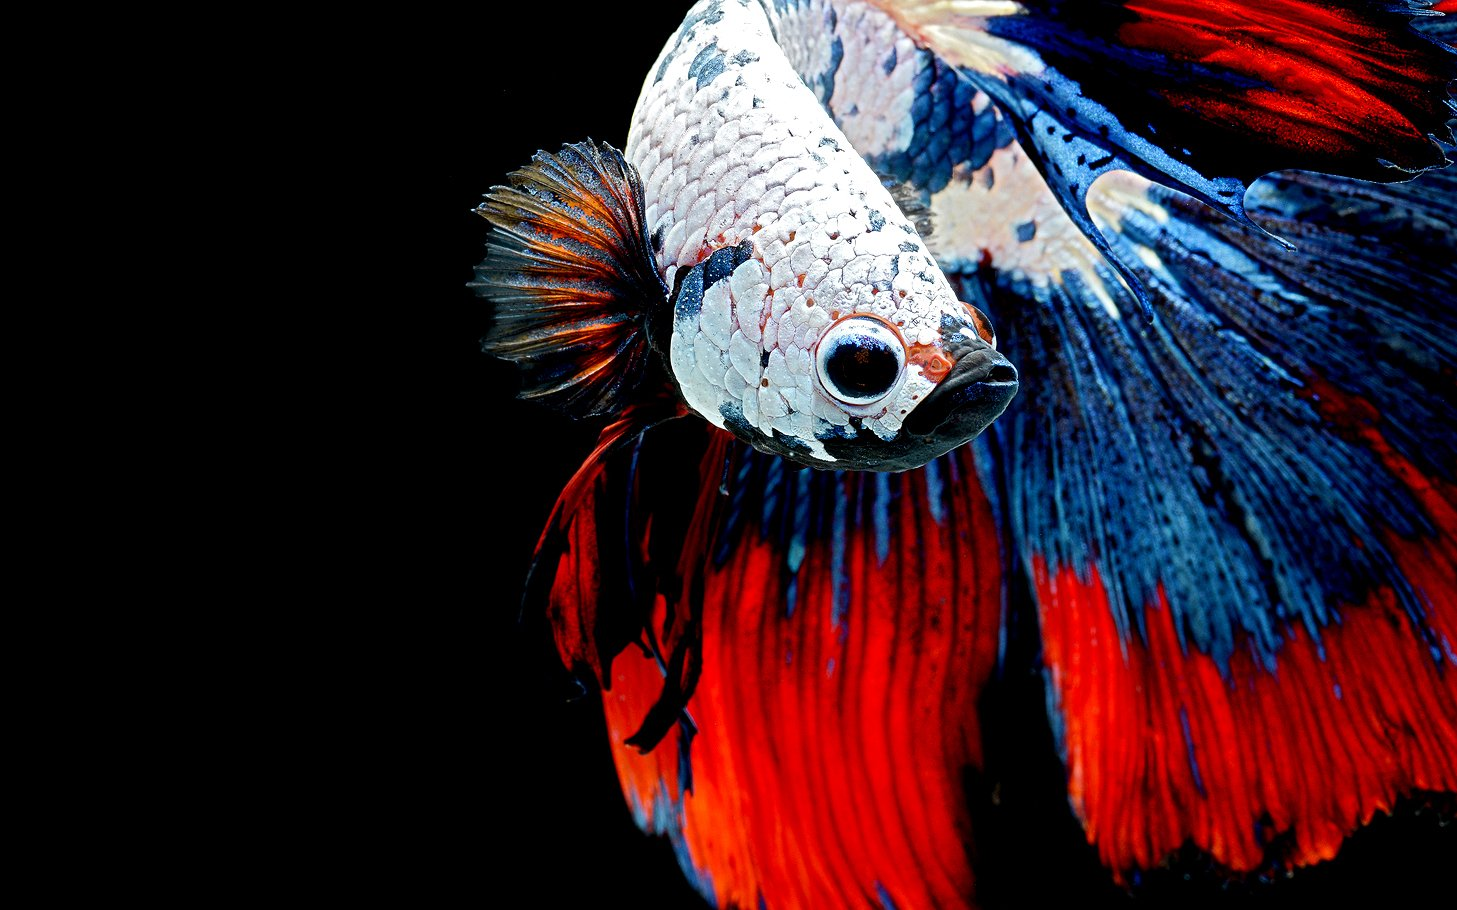 Betta Wallpaper and Background Image | 1457x910 | ID:559277